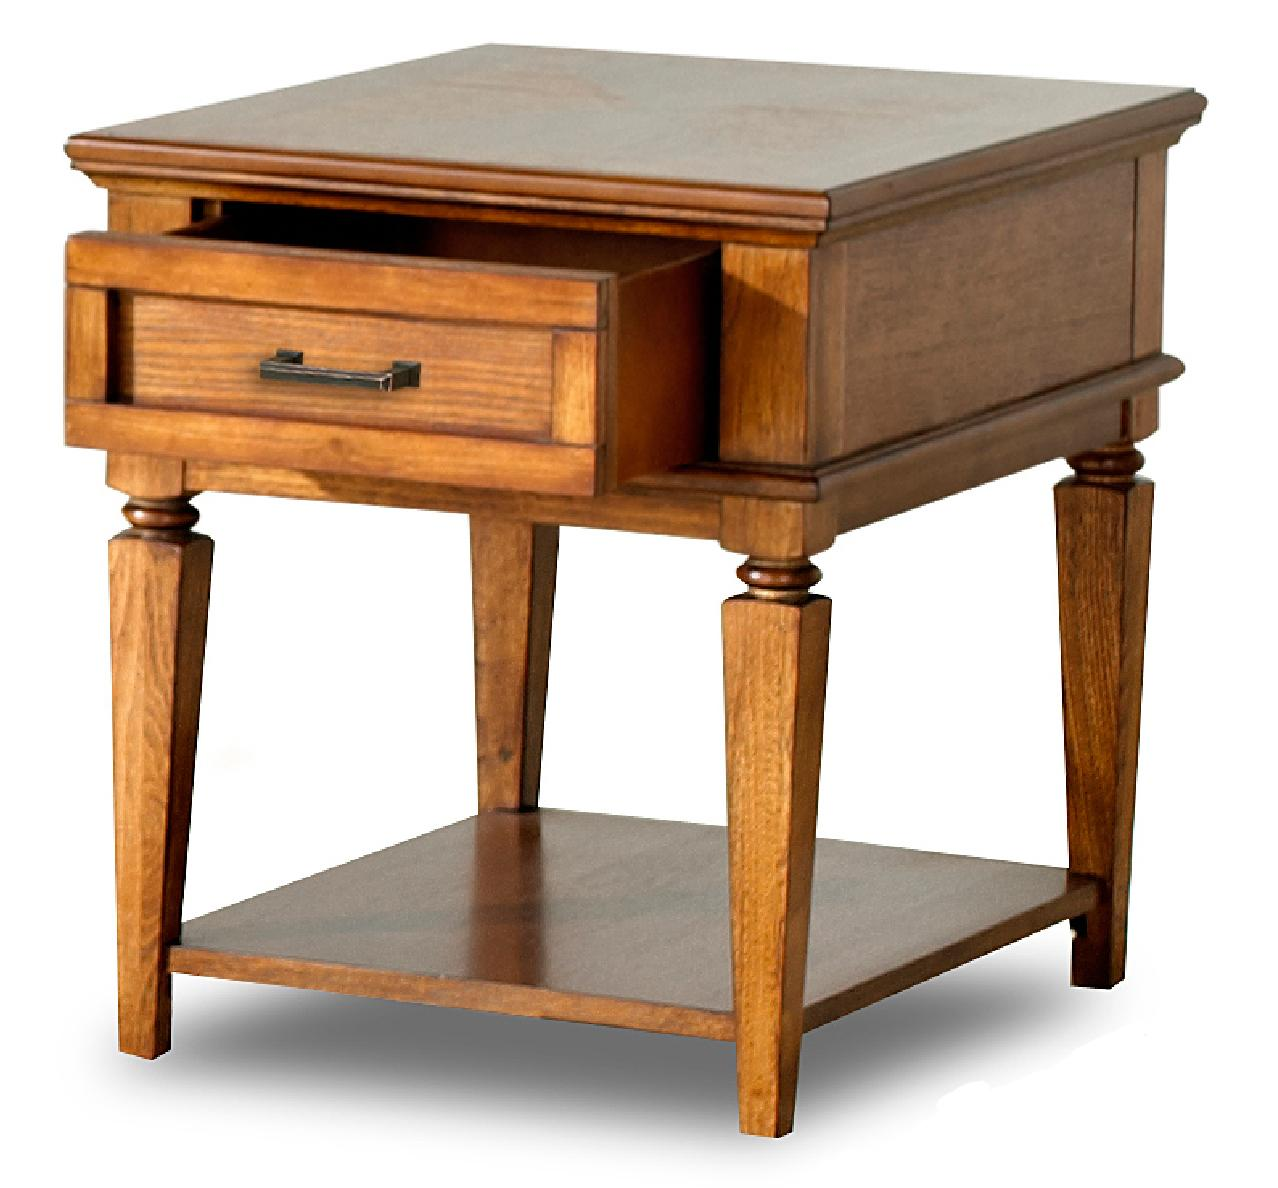 Concord transitional end table with drawer and shelf morris home end tables Morris home furniture outlet